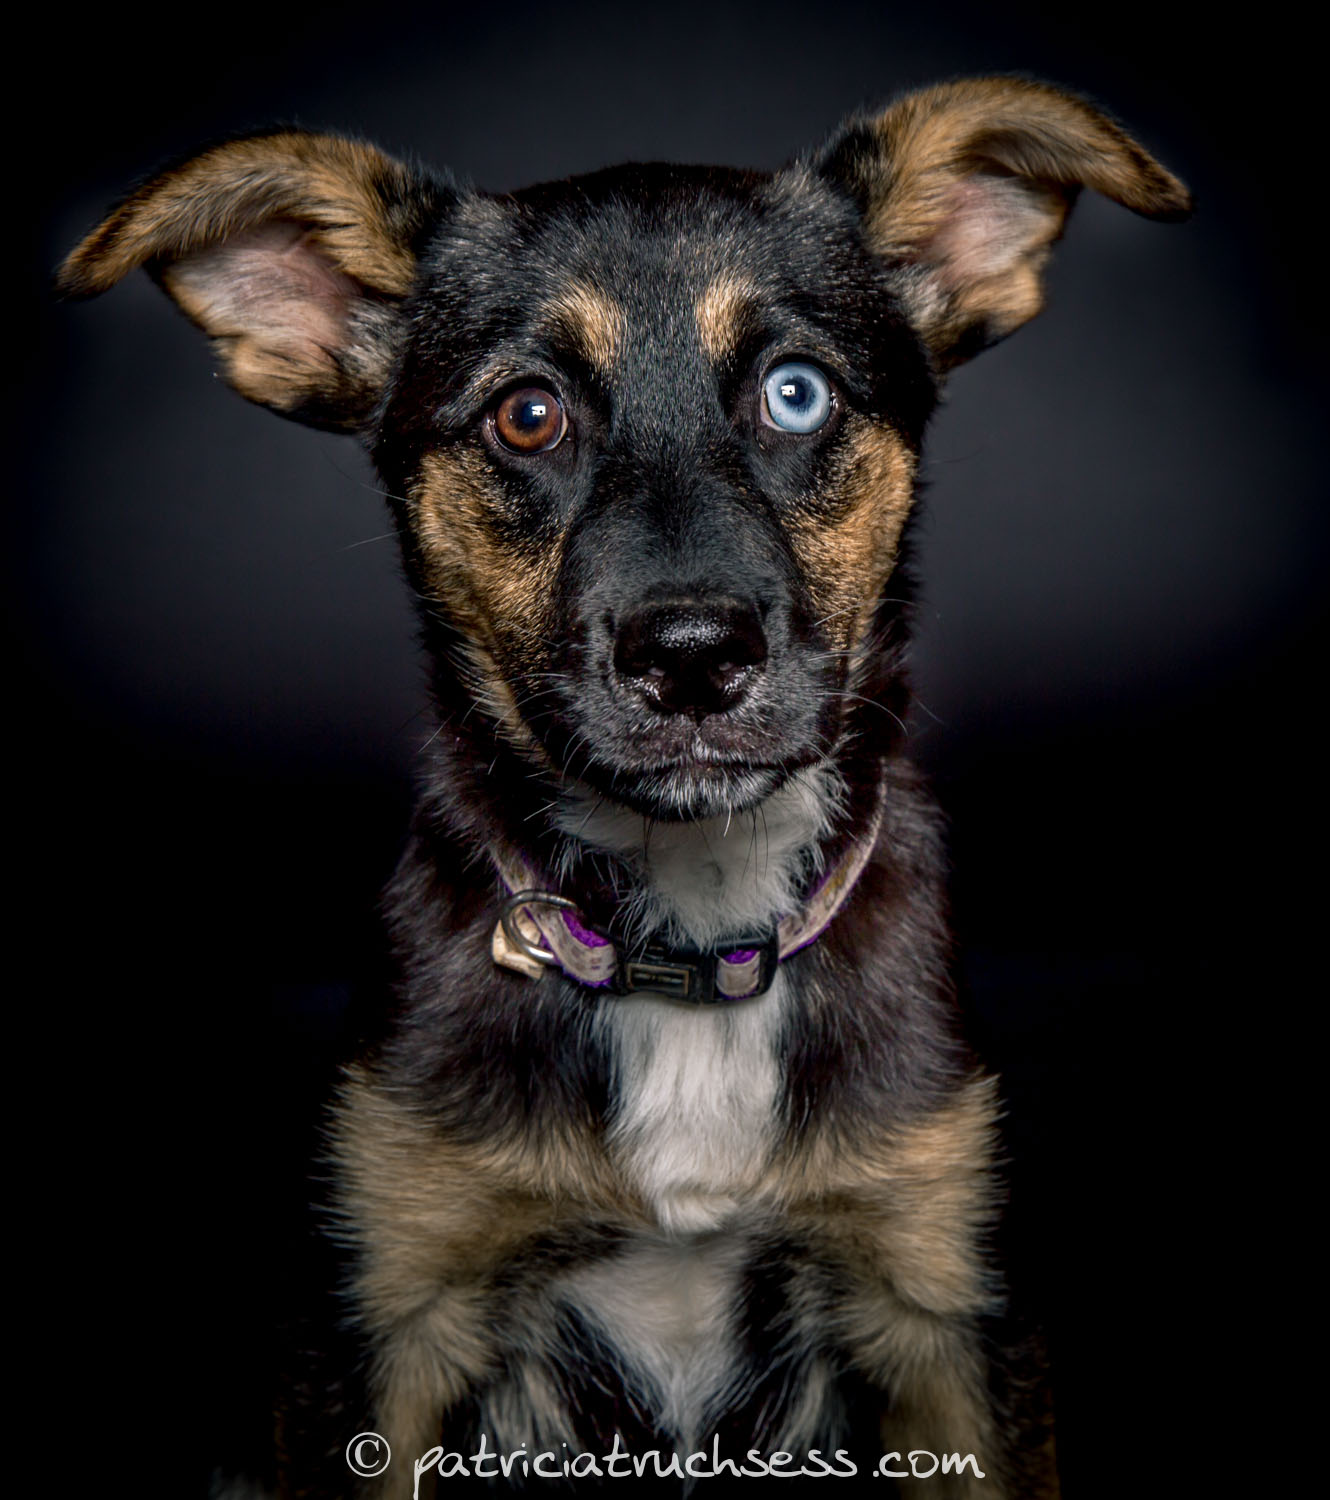 Dog portrait photo